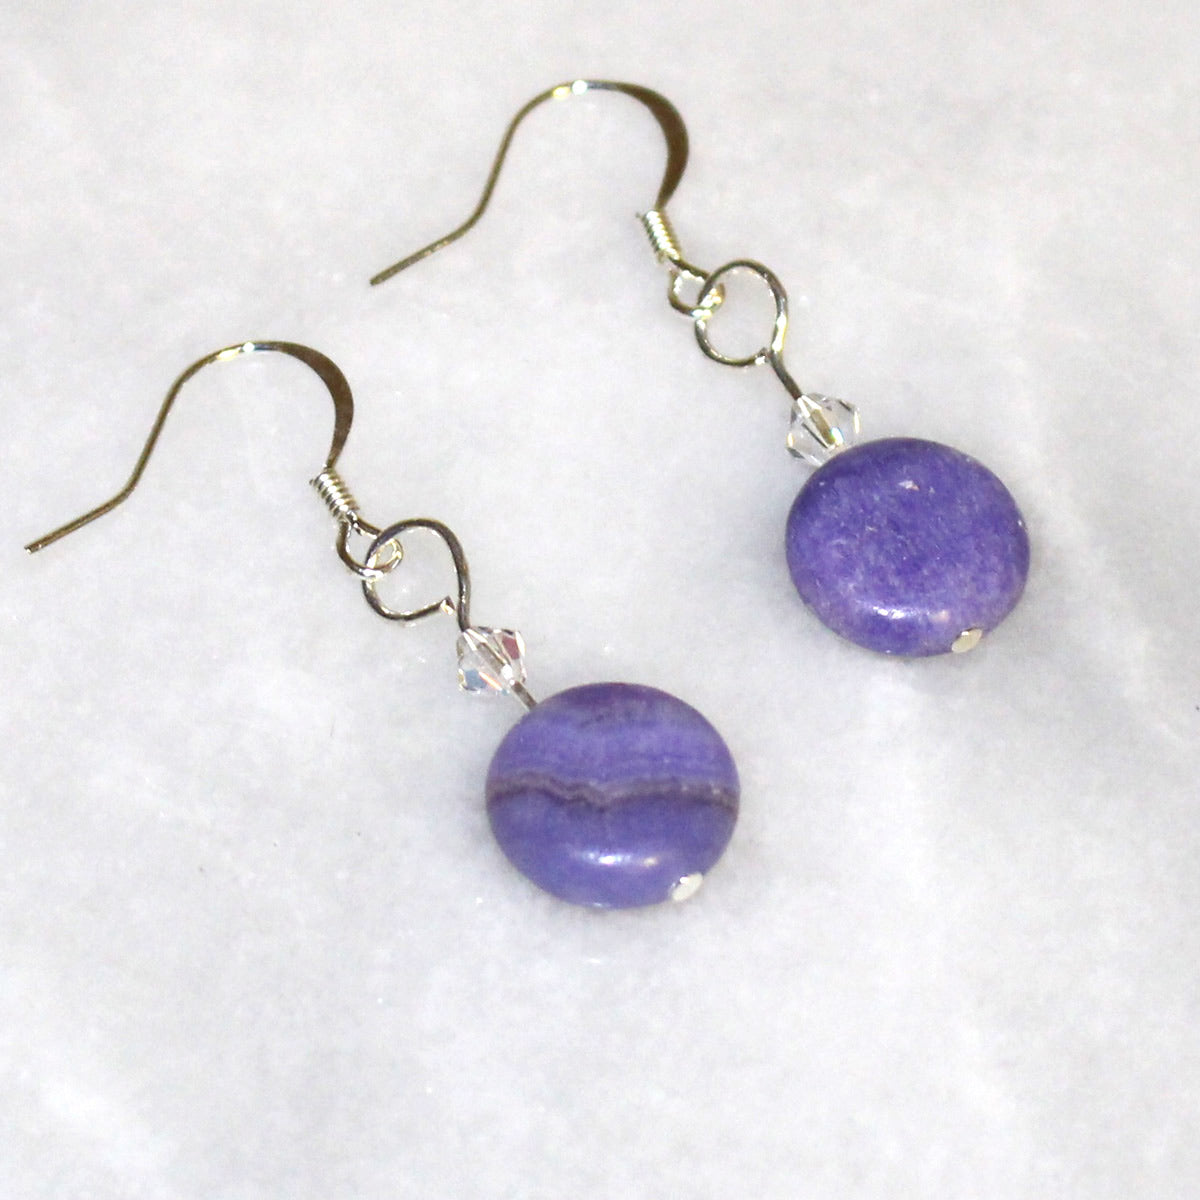 Purple Stone Earrings With Swarovski Crystal - Real Stone Earrings